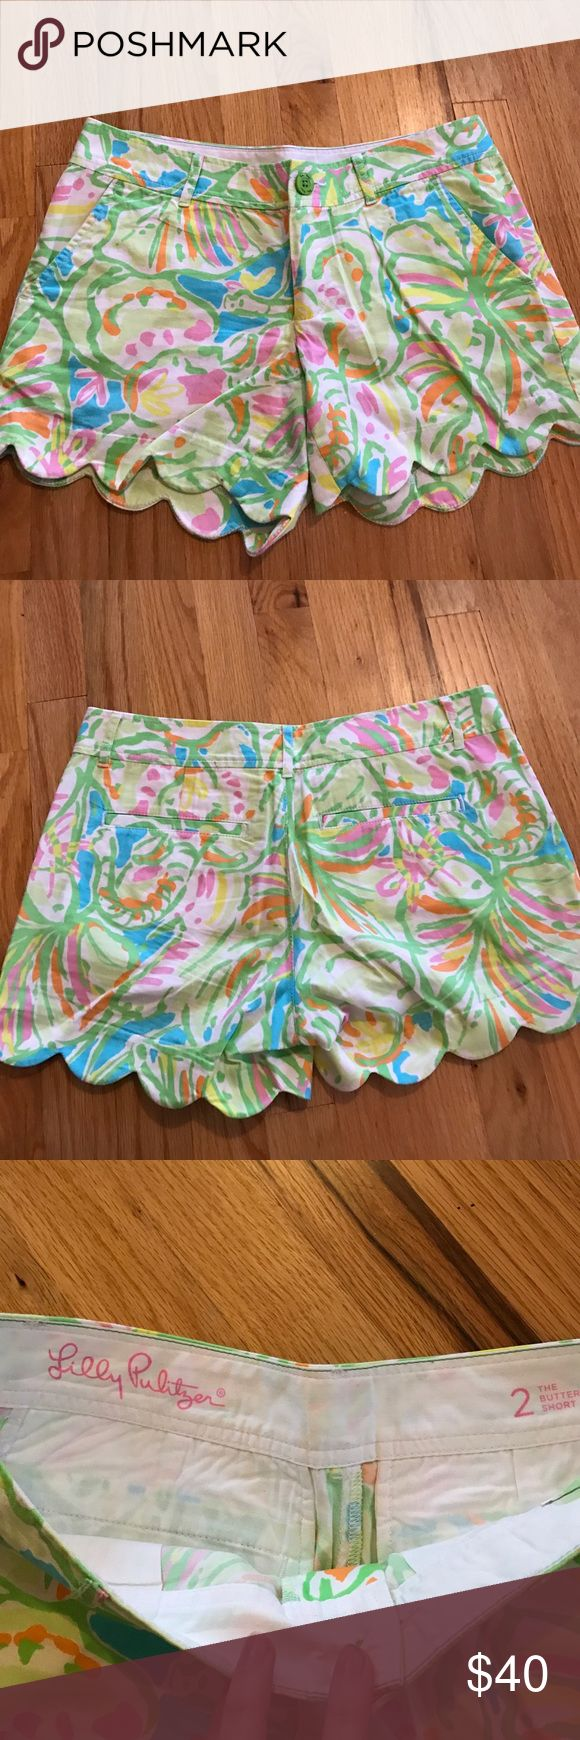 Lilly Pulitzer Shorts Scalloped lilly pulitzer shorts Lilly Pulitzer Shorts